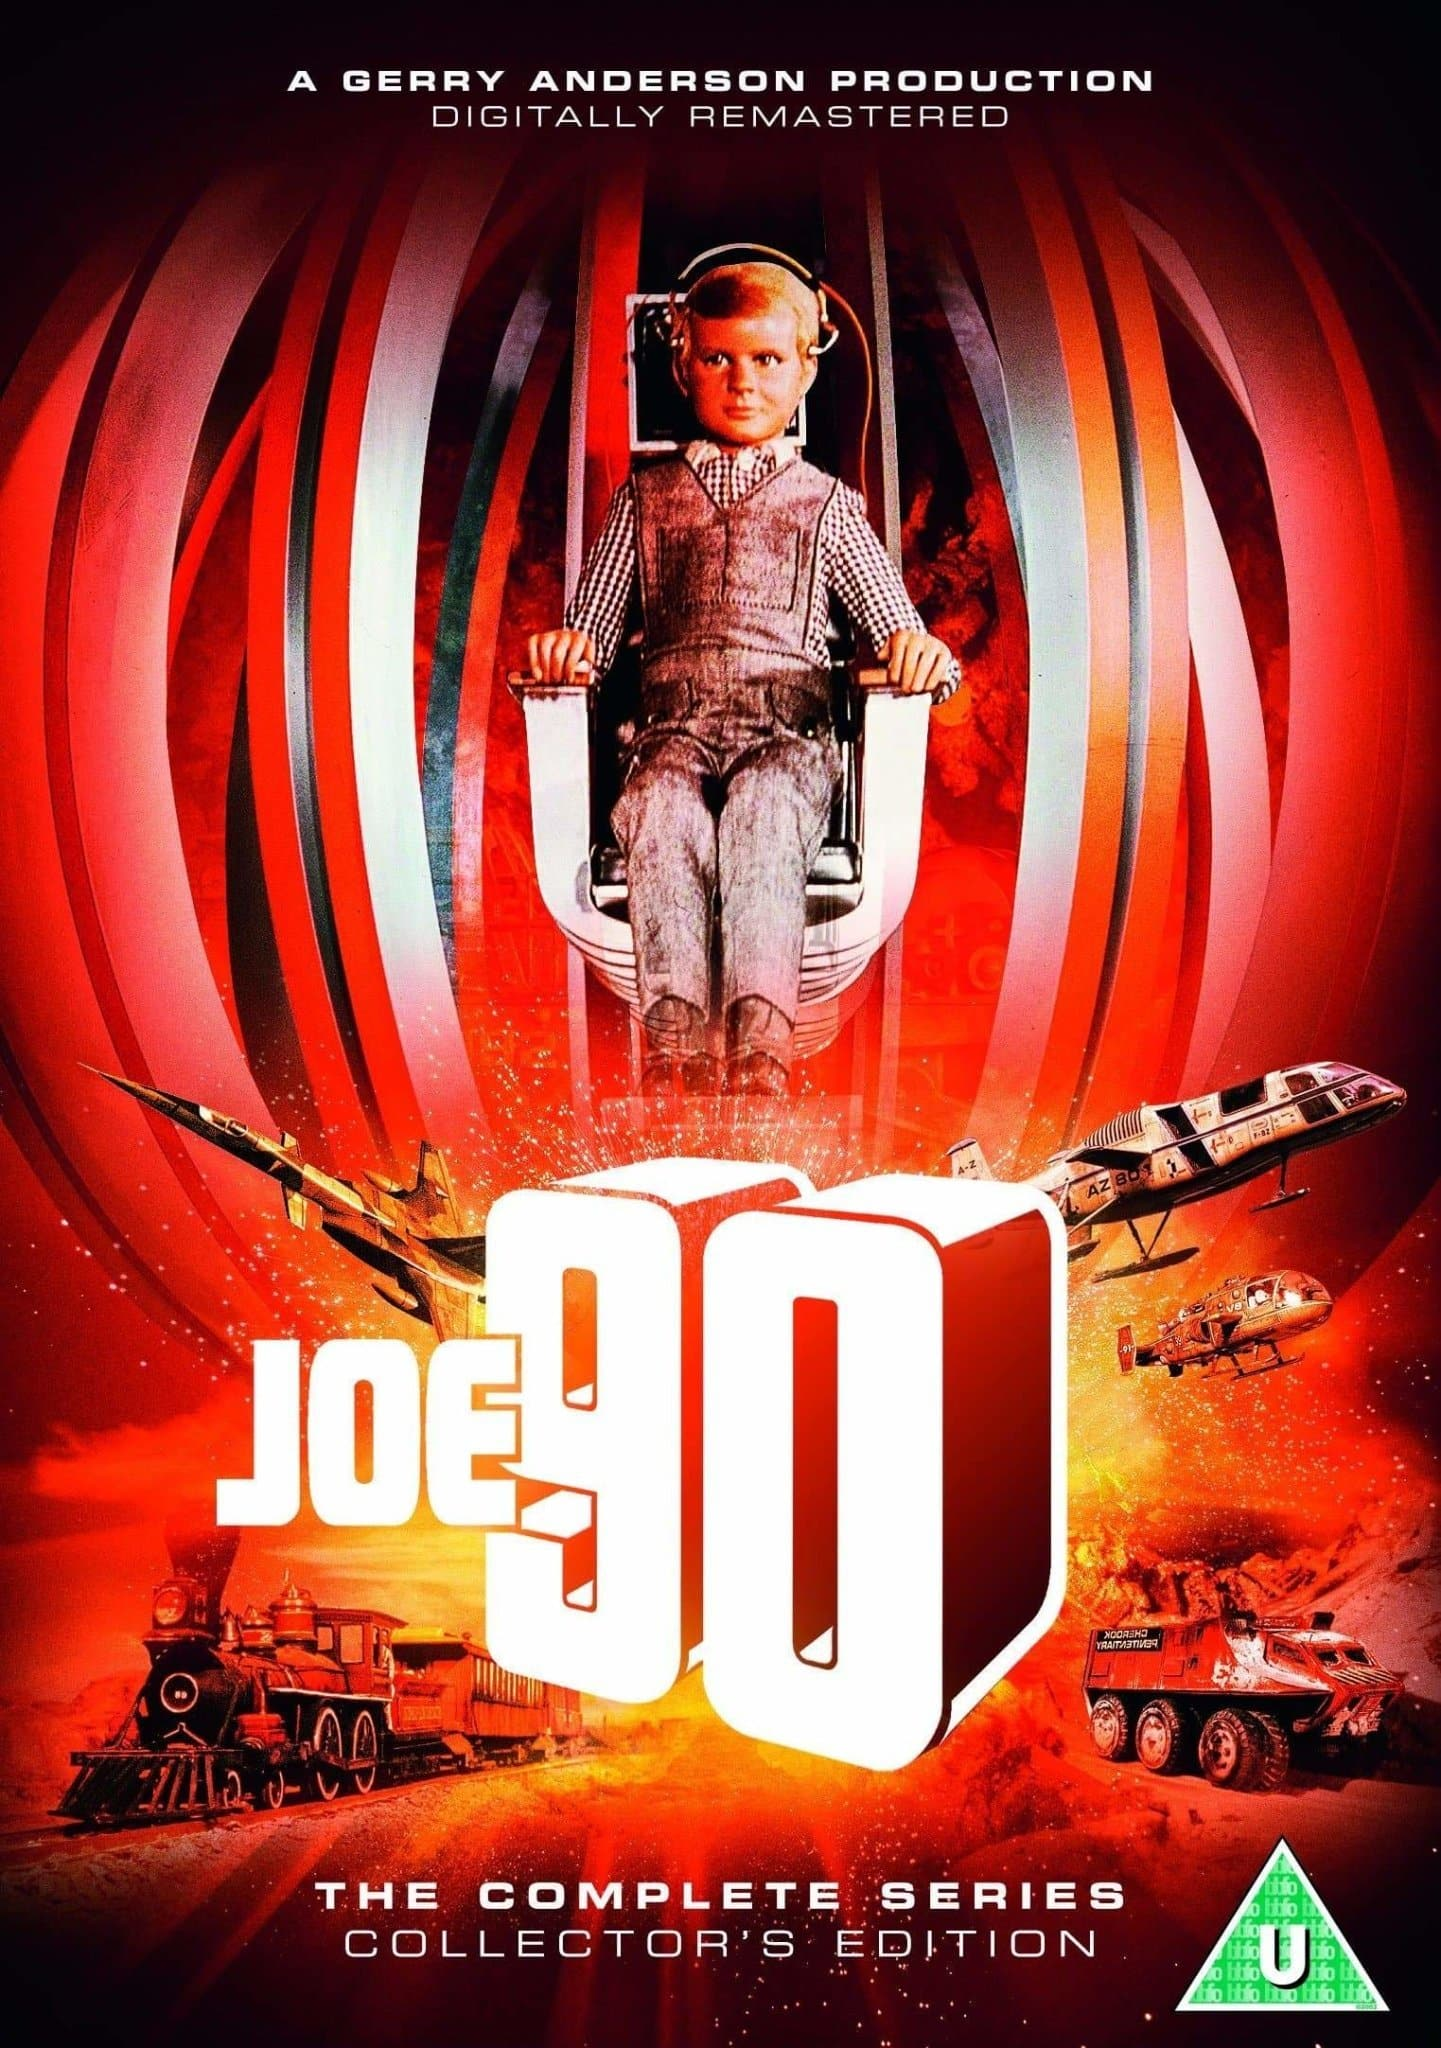 Joe 90: The Complete Series Box Set [DVD] (2018 Edition/Region 2) - The Gerry Anderson Store